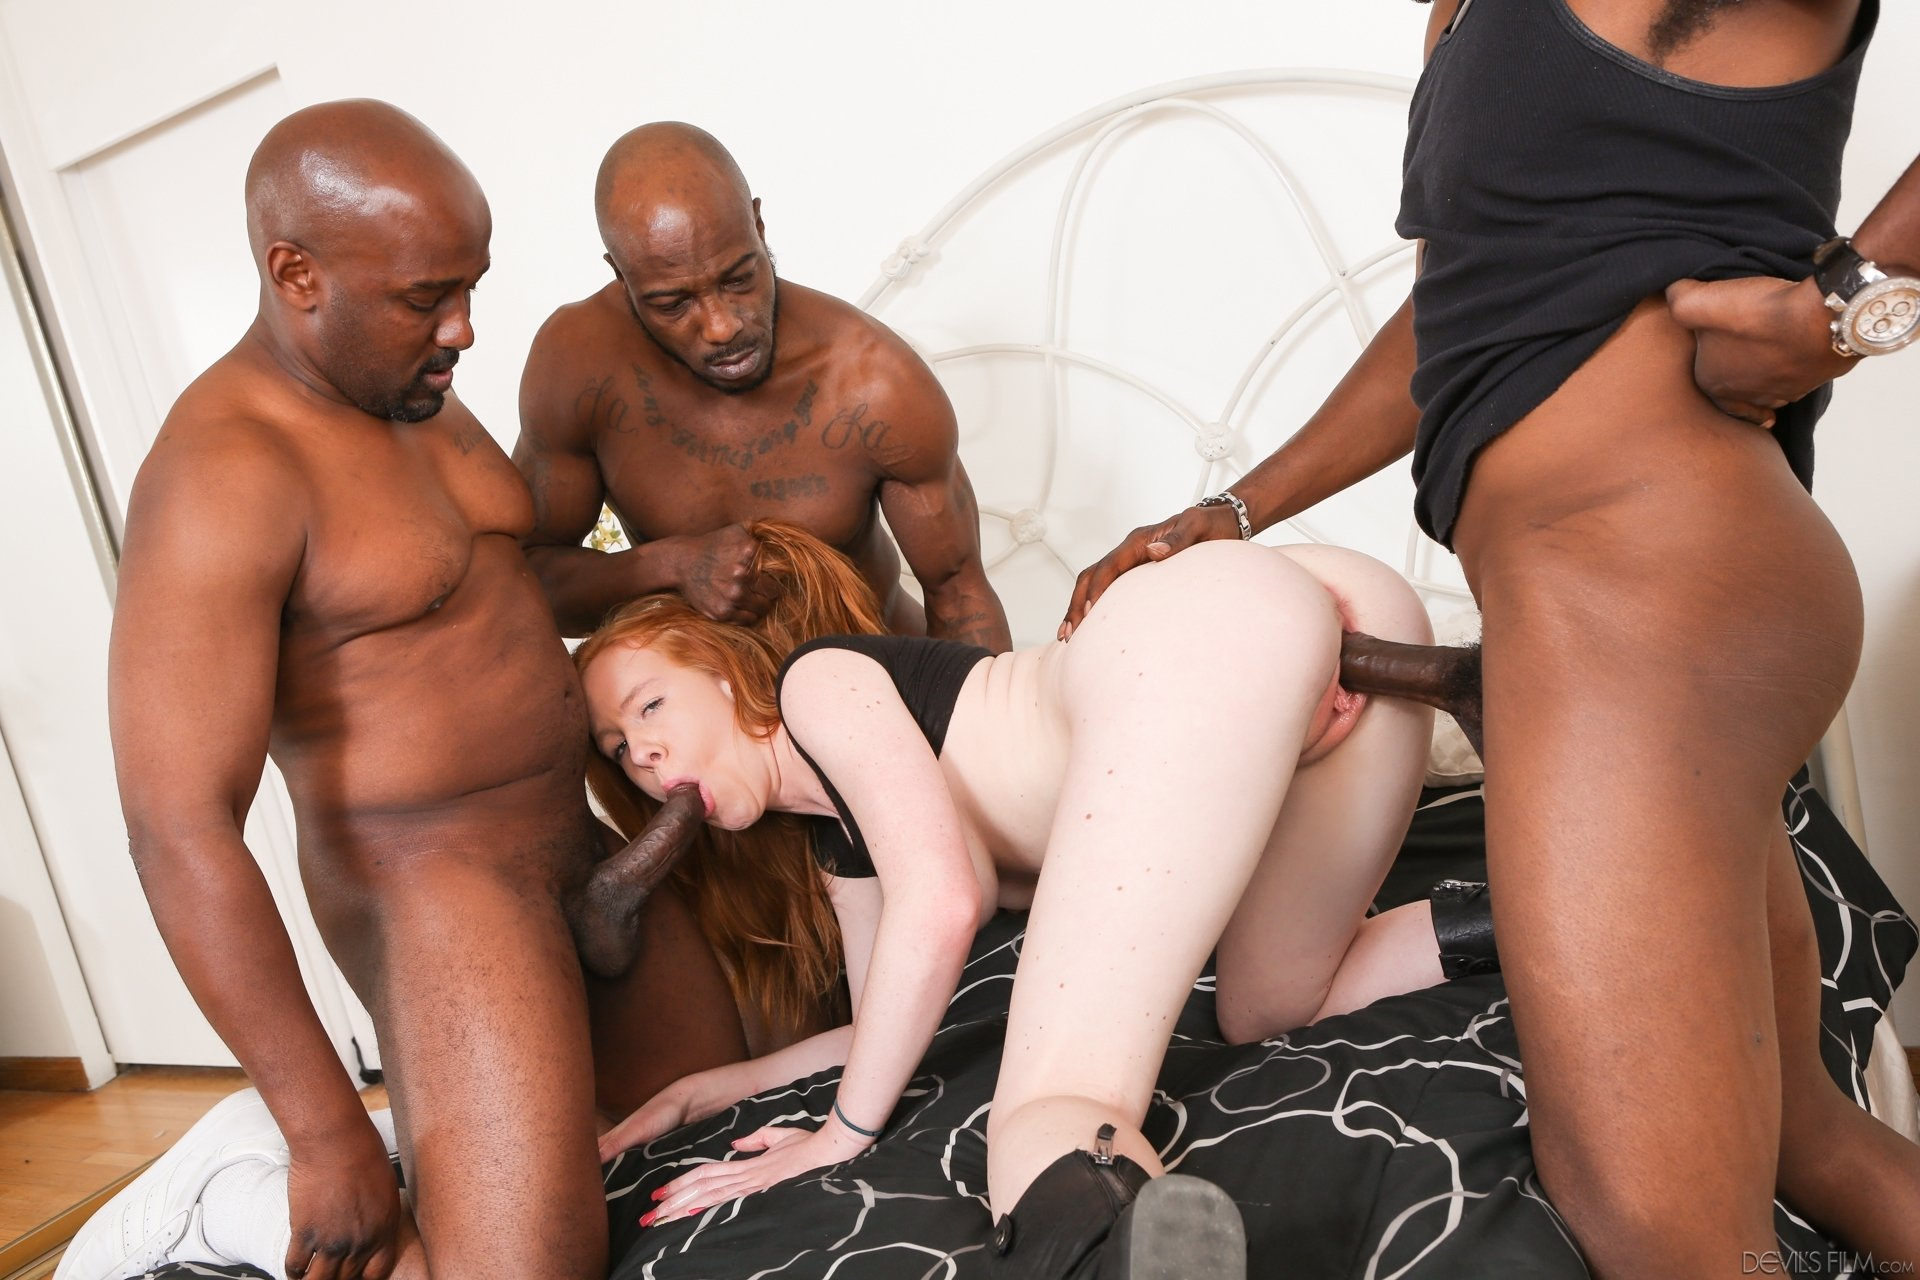 latina-interracial-gangbang-sex-galleries-with